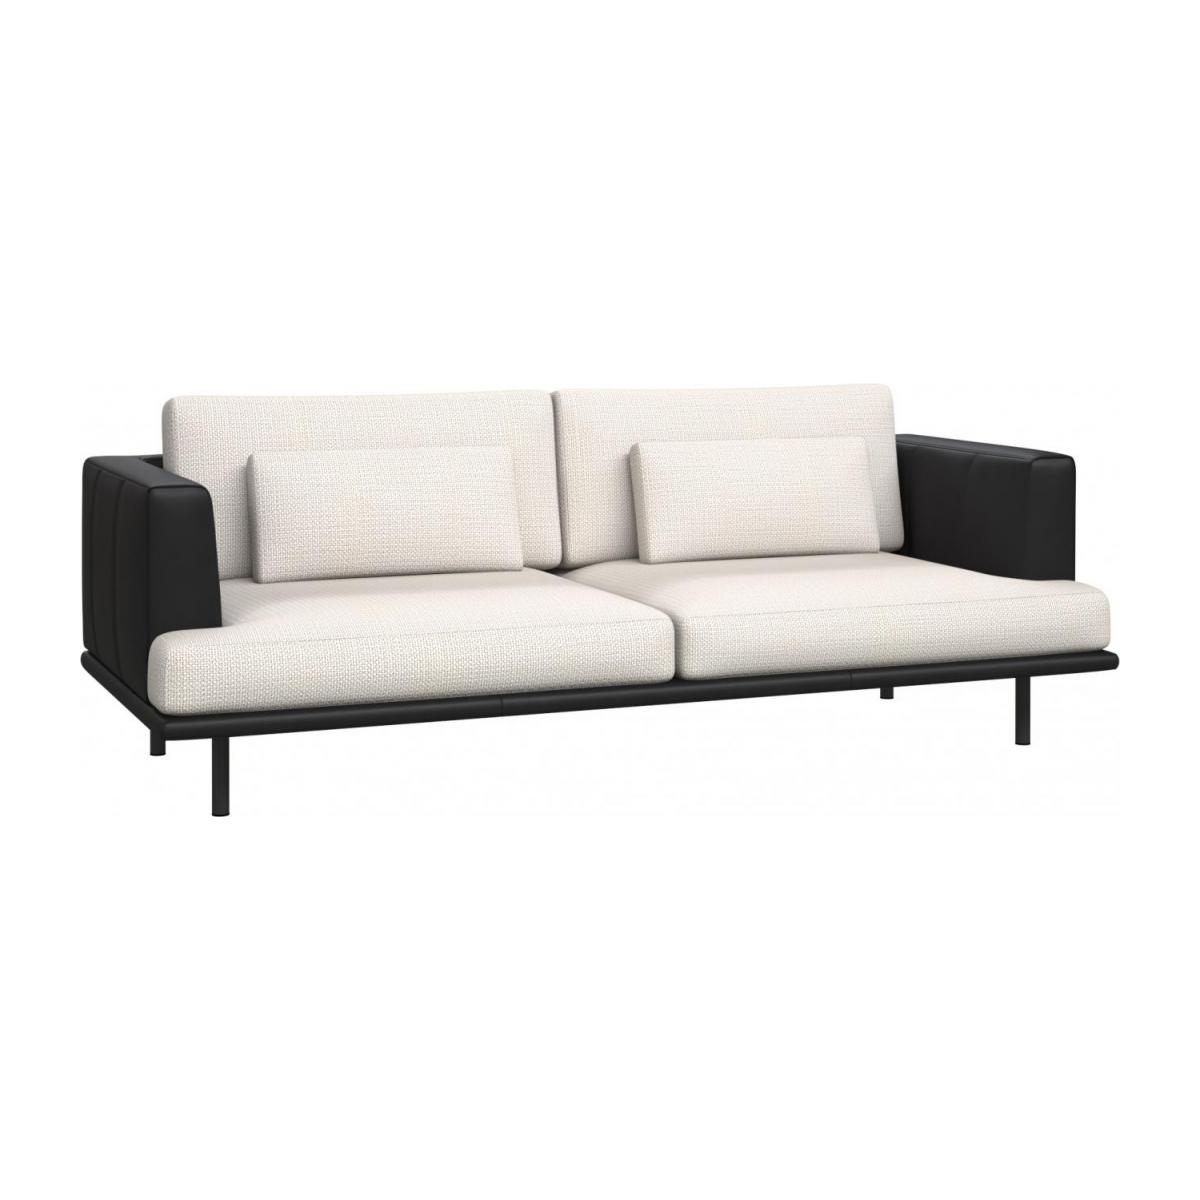 3 seater sofa in Fasoli fabric, snow white with base and armrests in black leather n°1